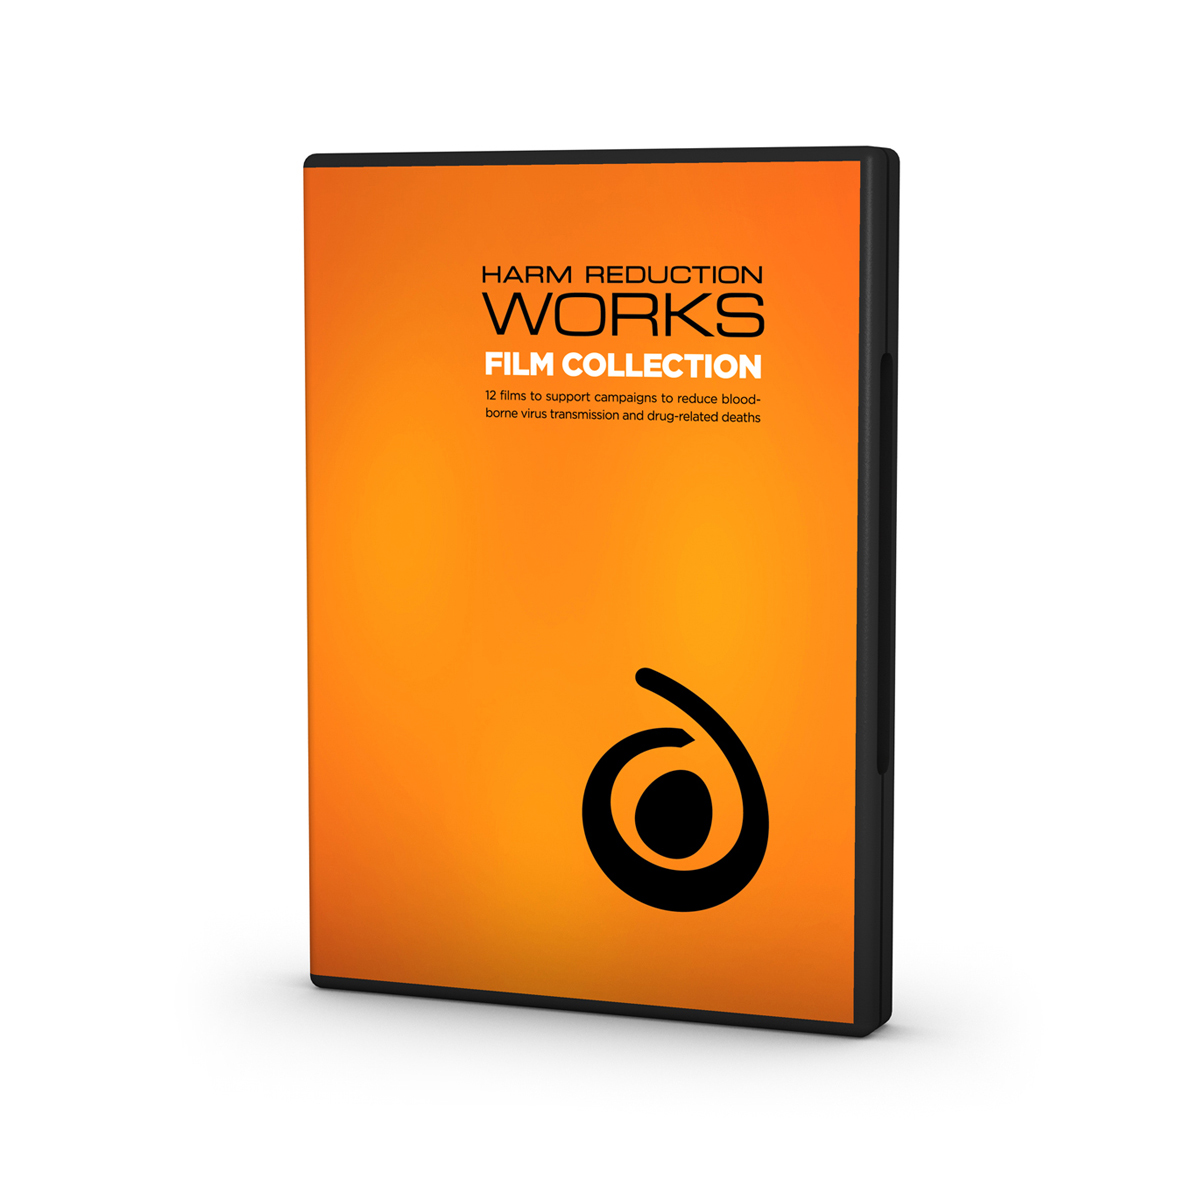 Harm Reduction Works Film Collection